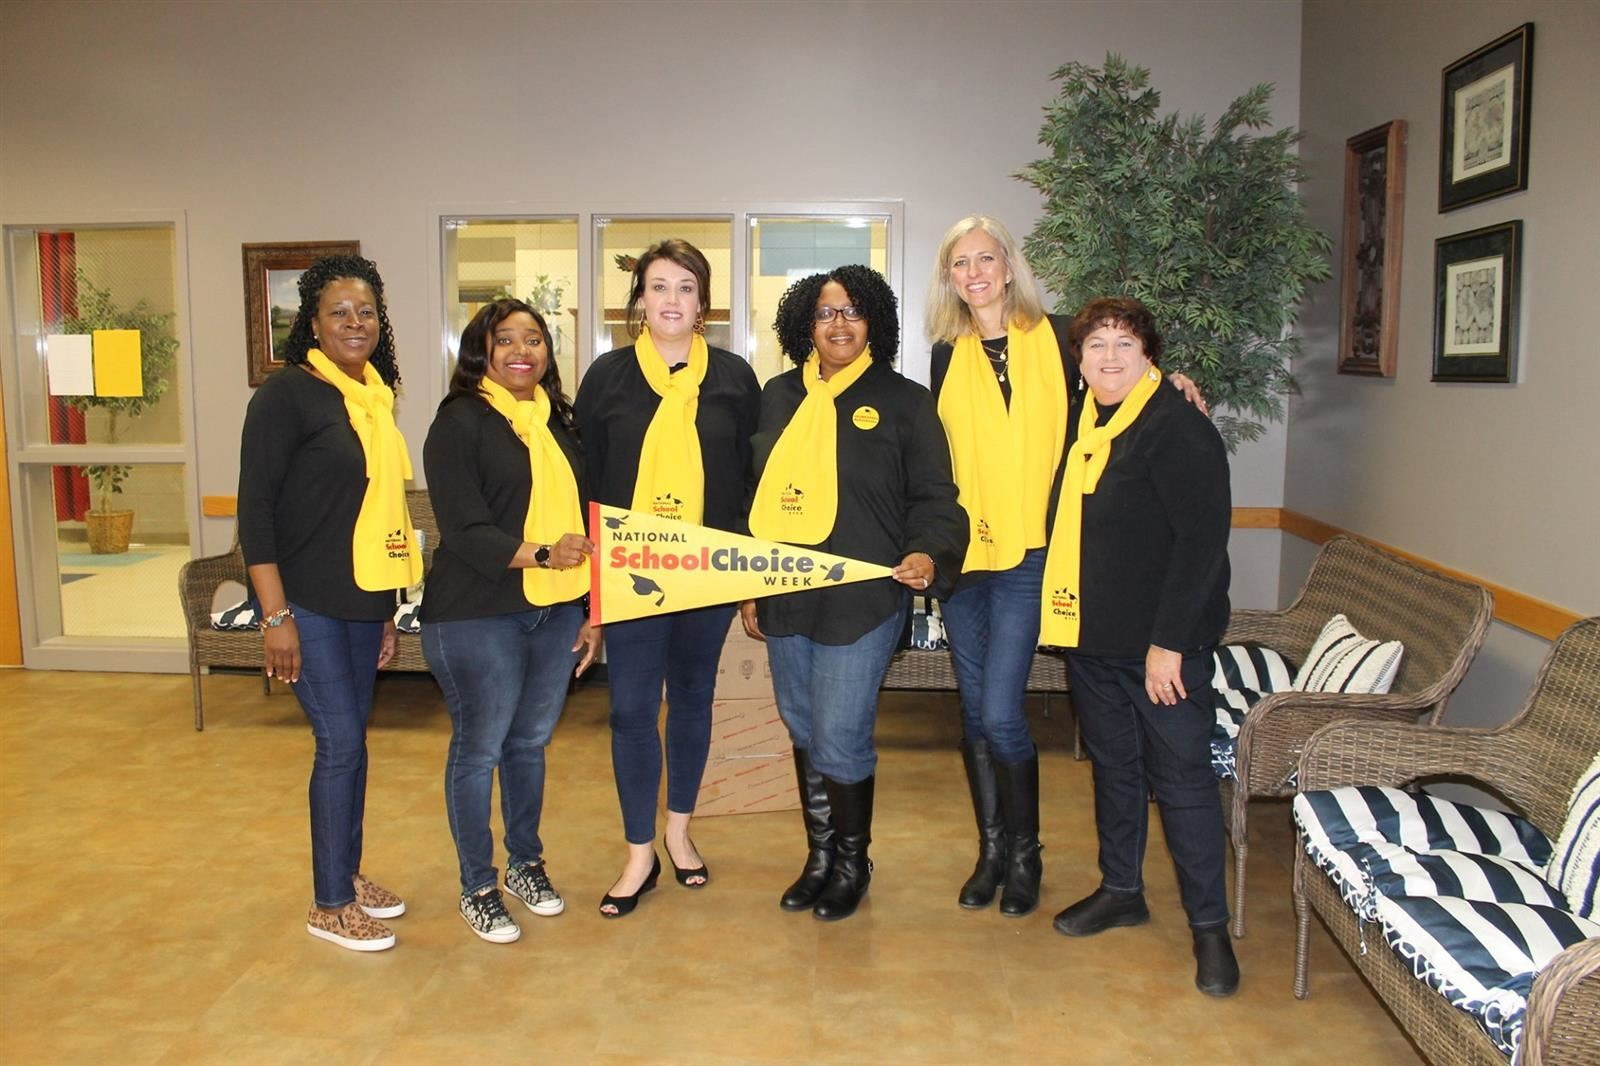 Robert Cross Participates in School Choice Week